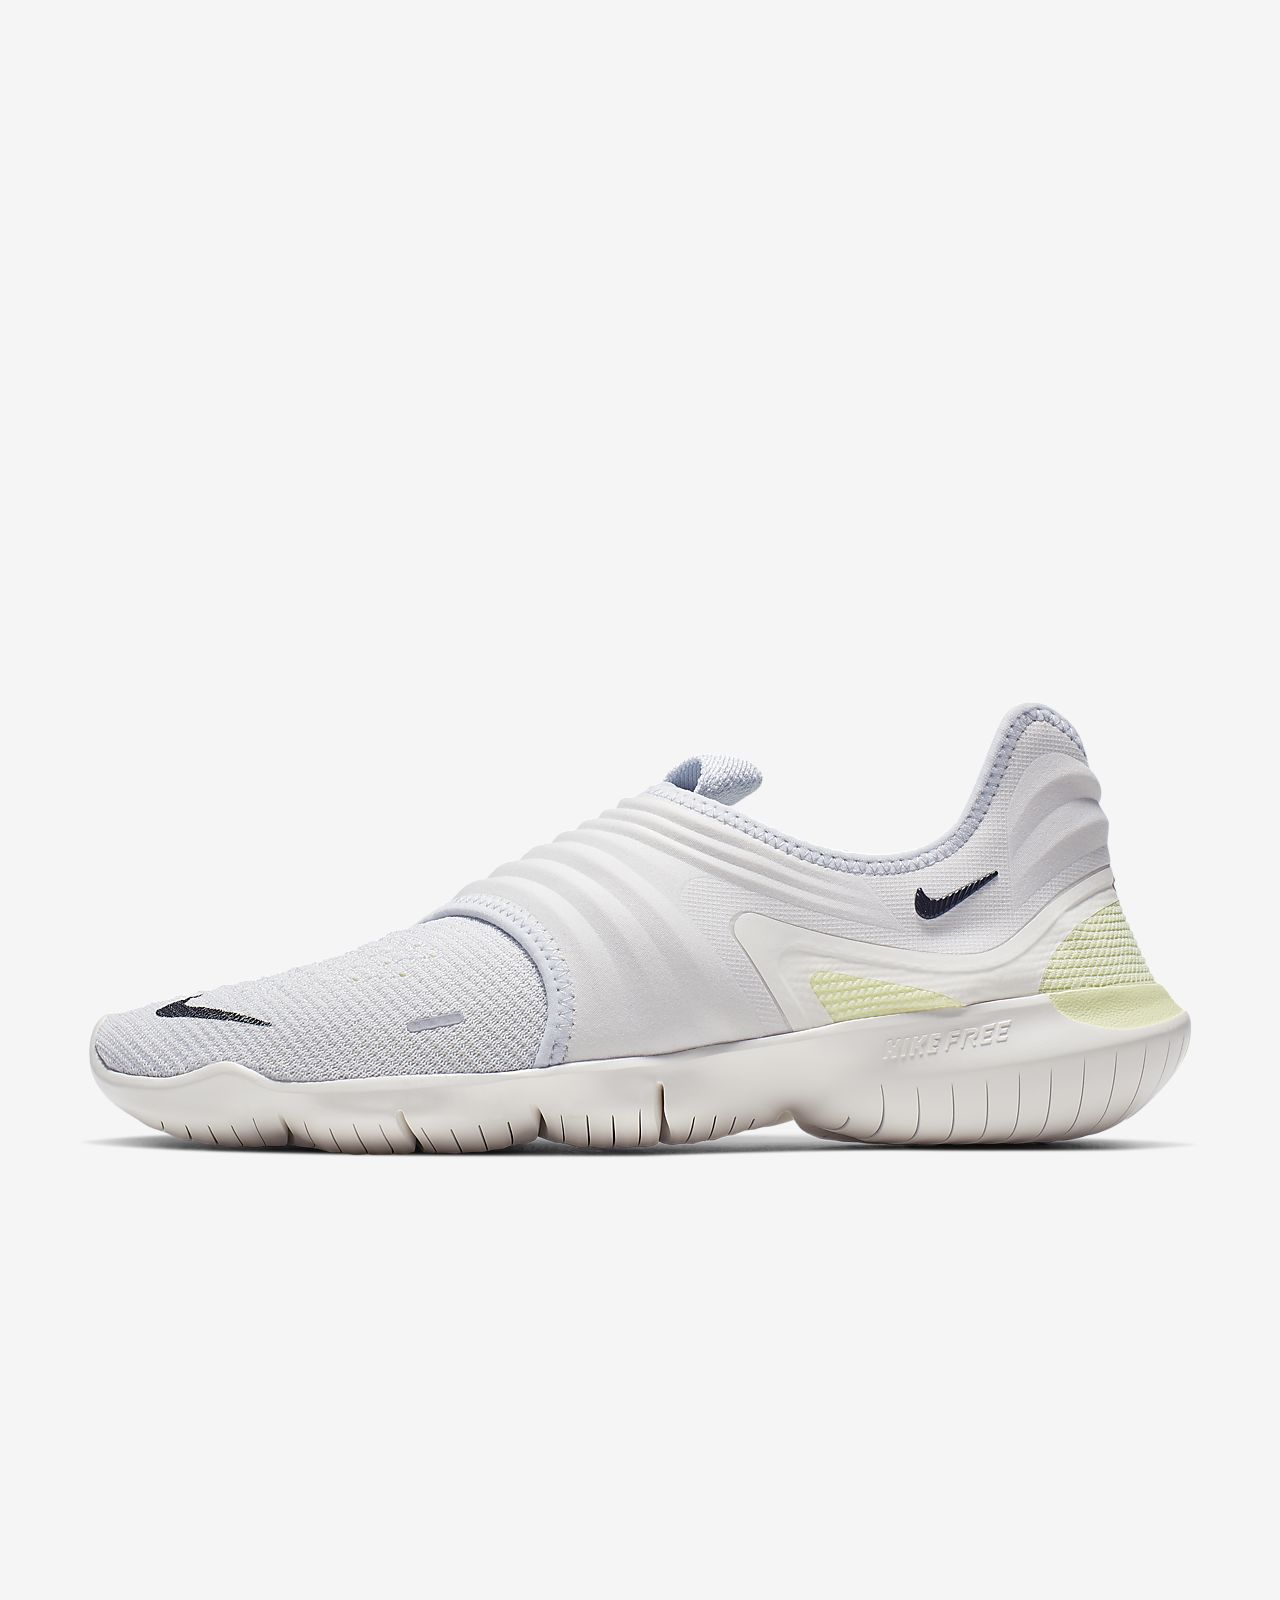 356fd02d95d3 Nike Free RN Flyknit 3.0 Men s Running Shoe. Nike.com AT